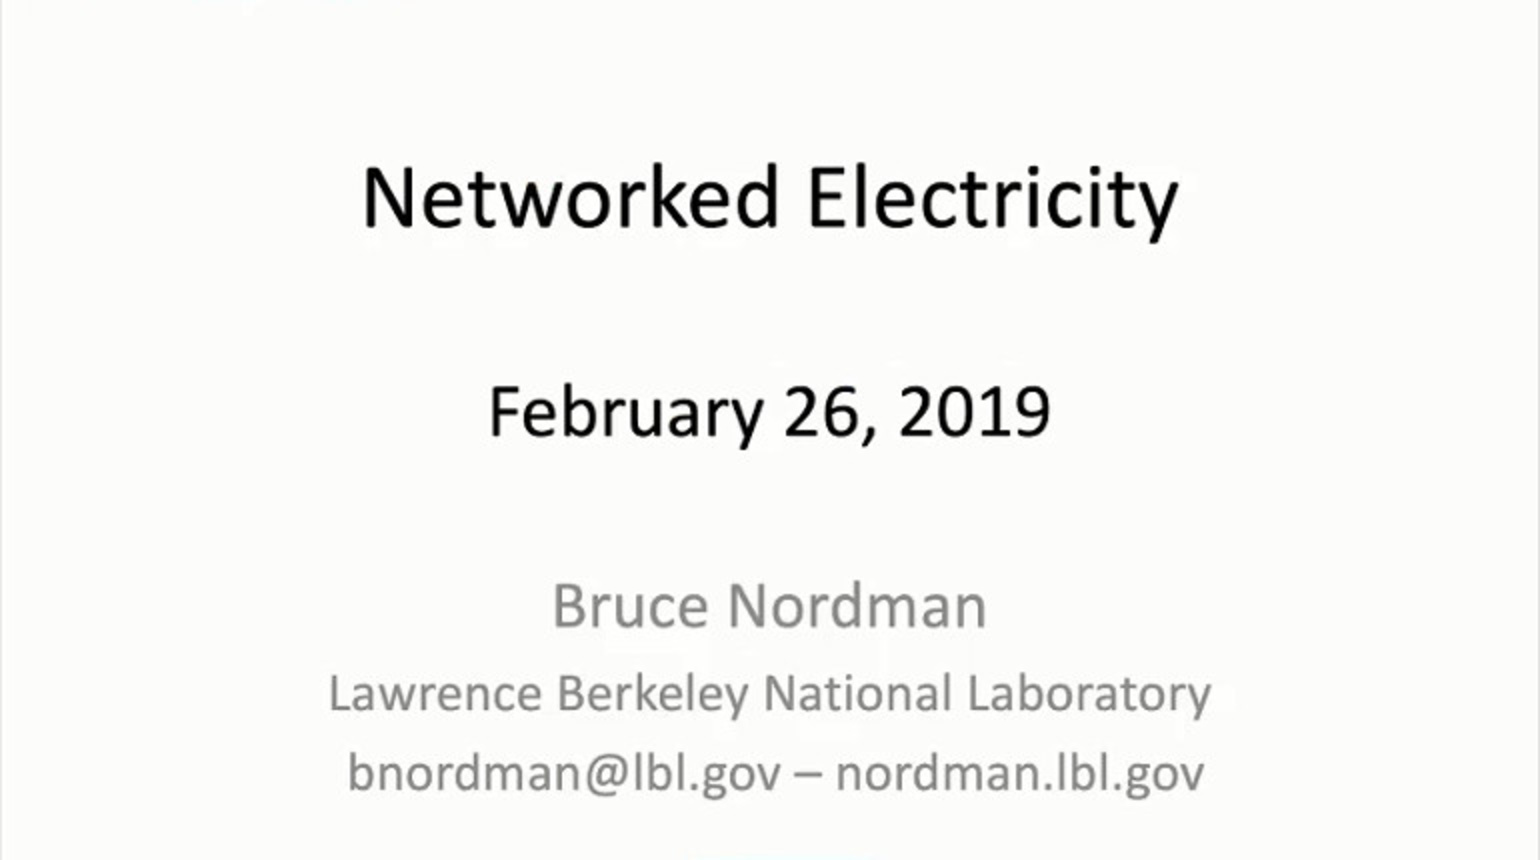 IEEE Future Networks: Networked Electricity